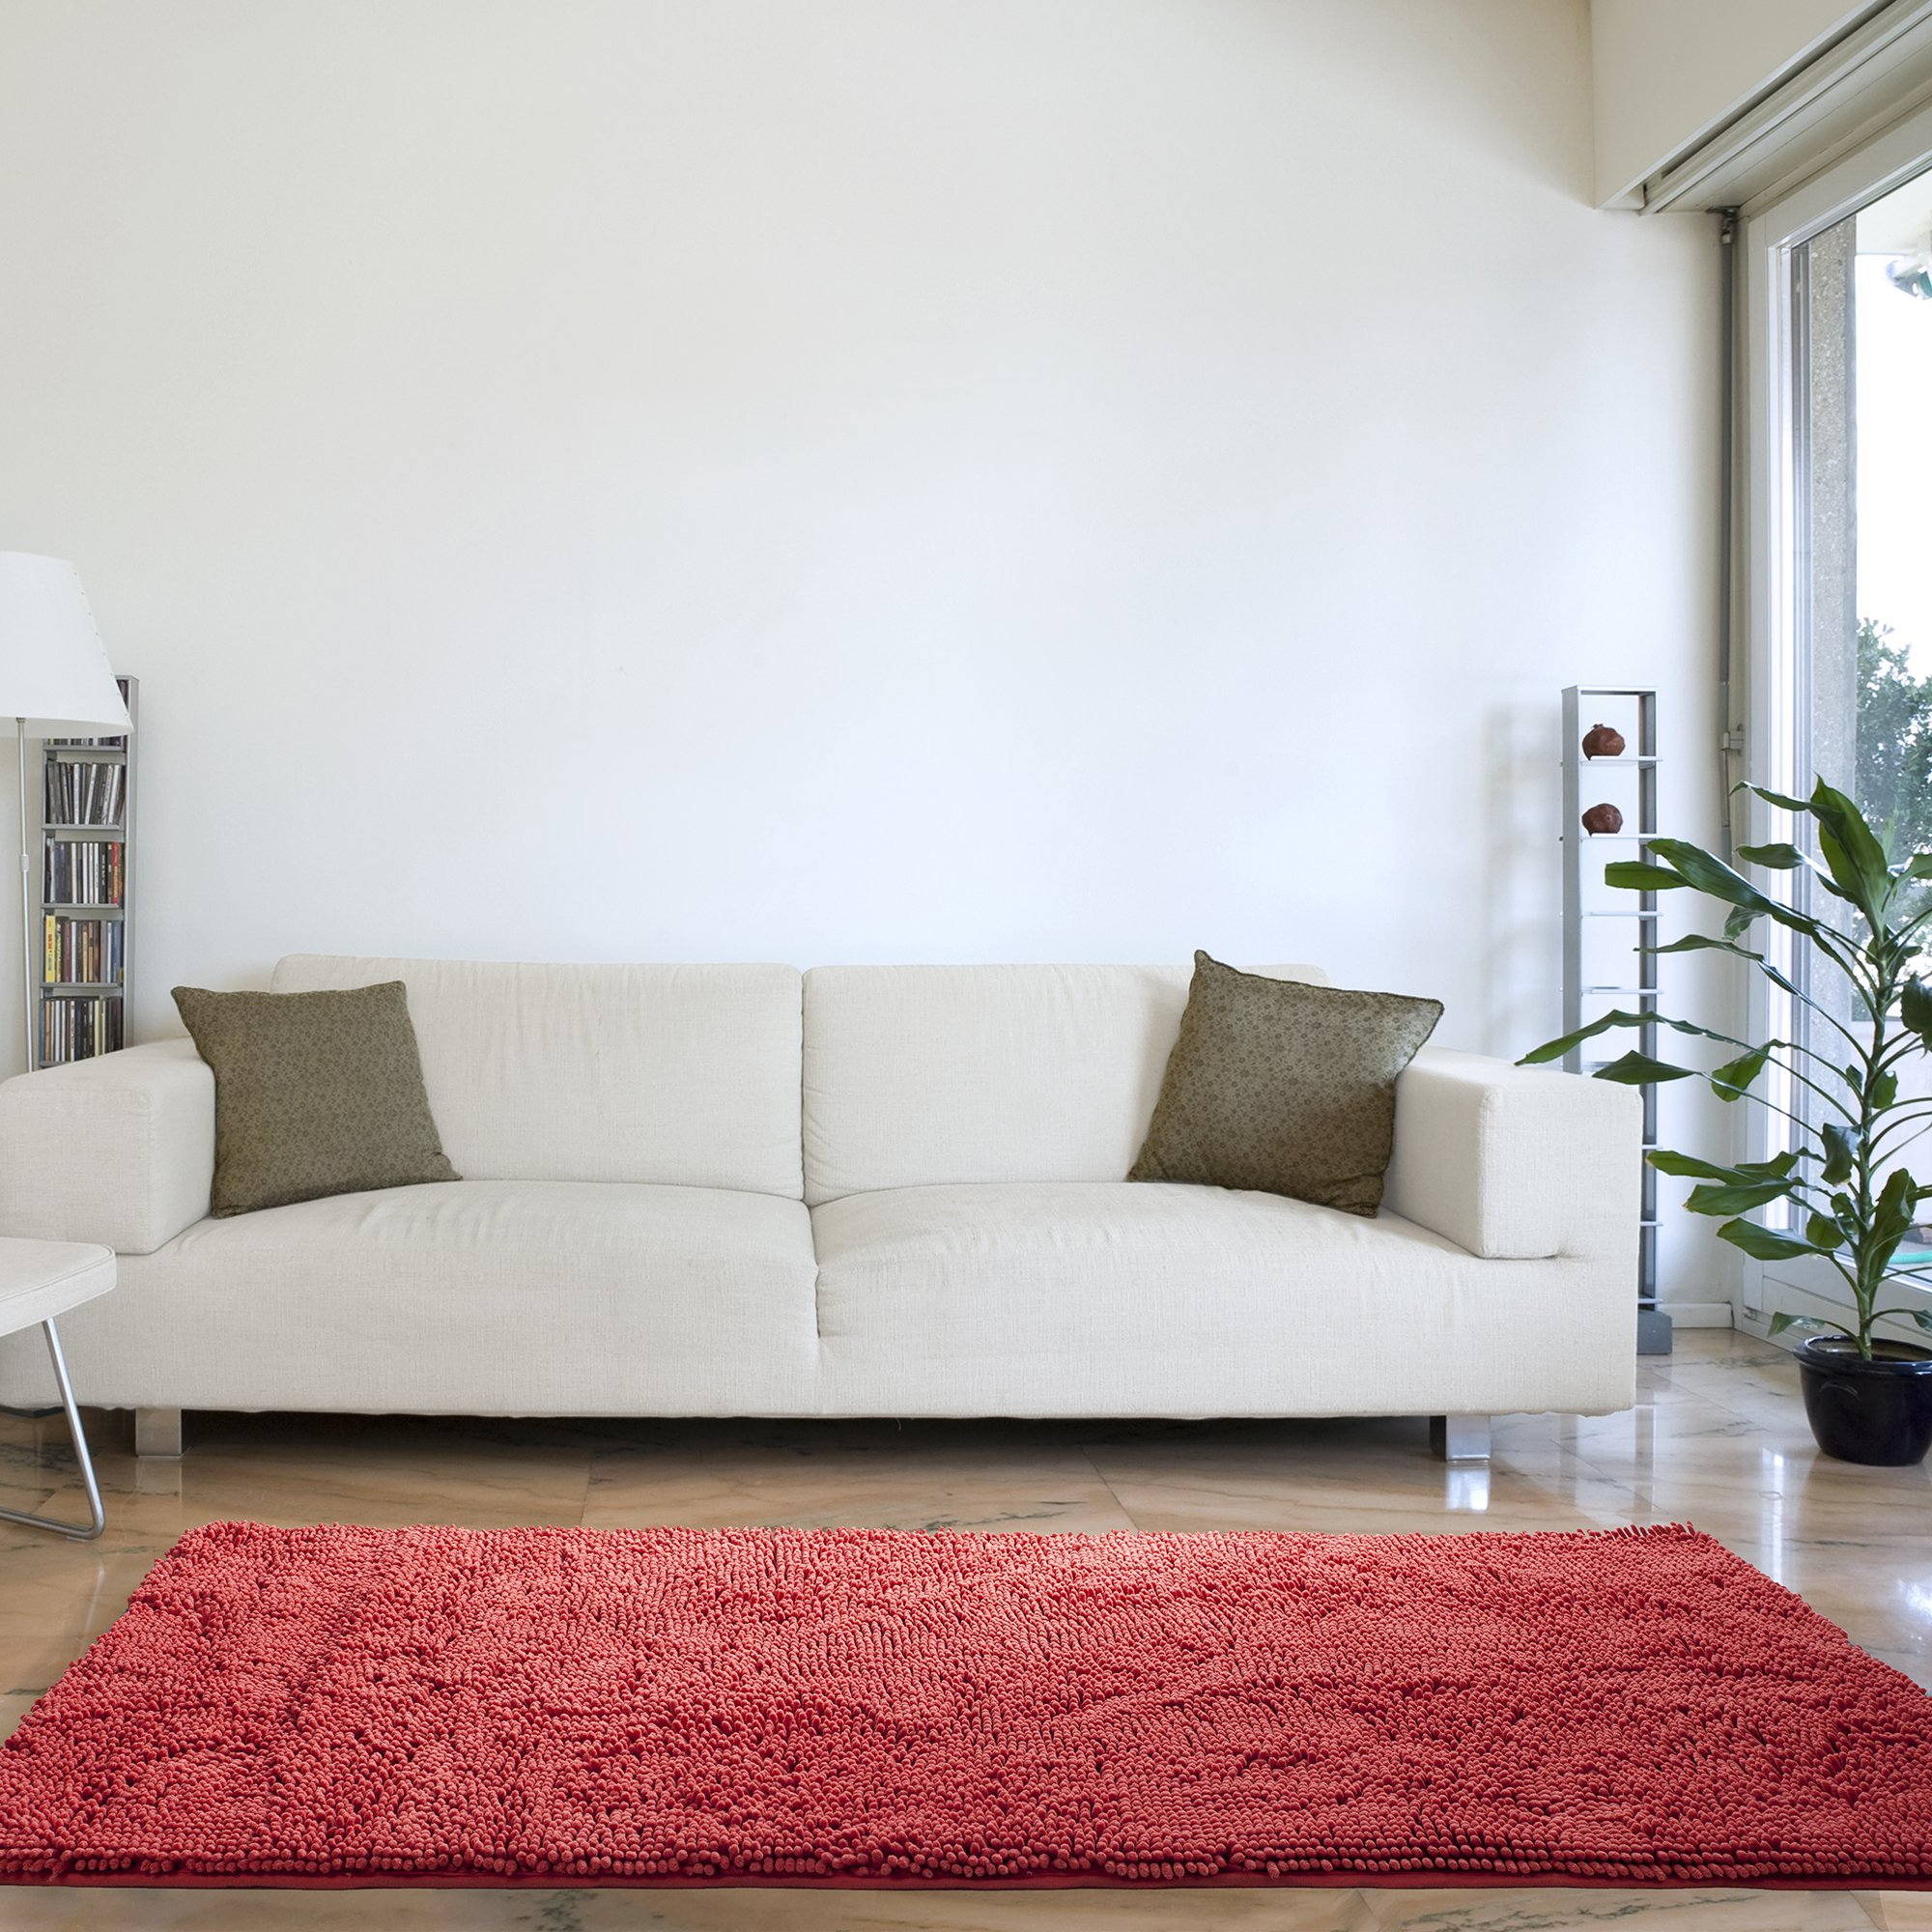 Bedford Home High Pile Shag Rug Carpet - Coral - 30x60